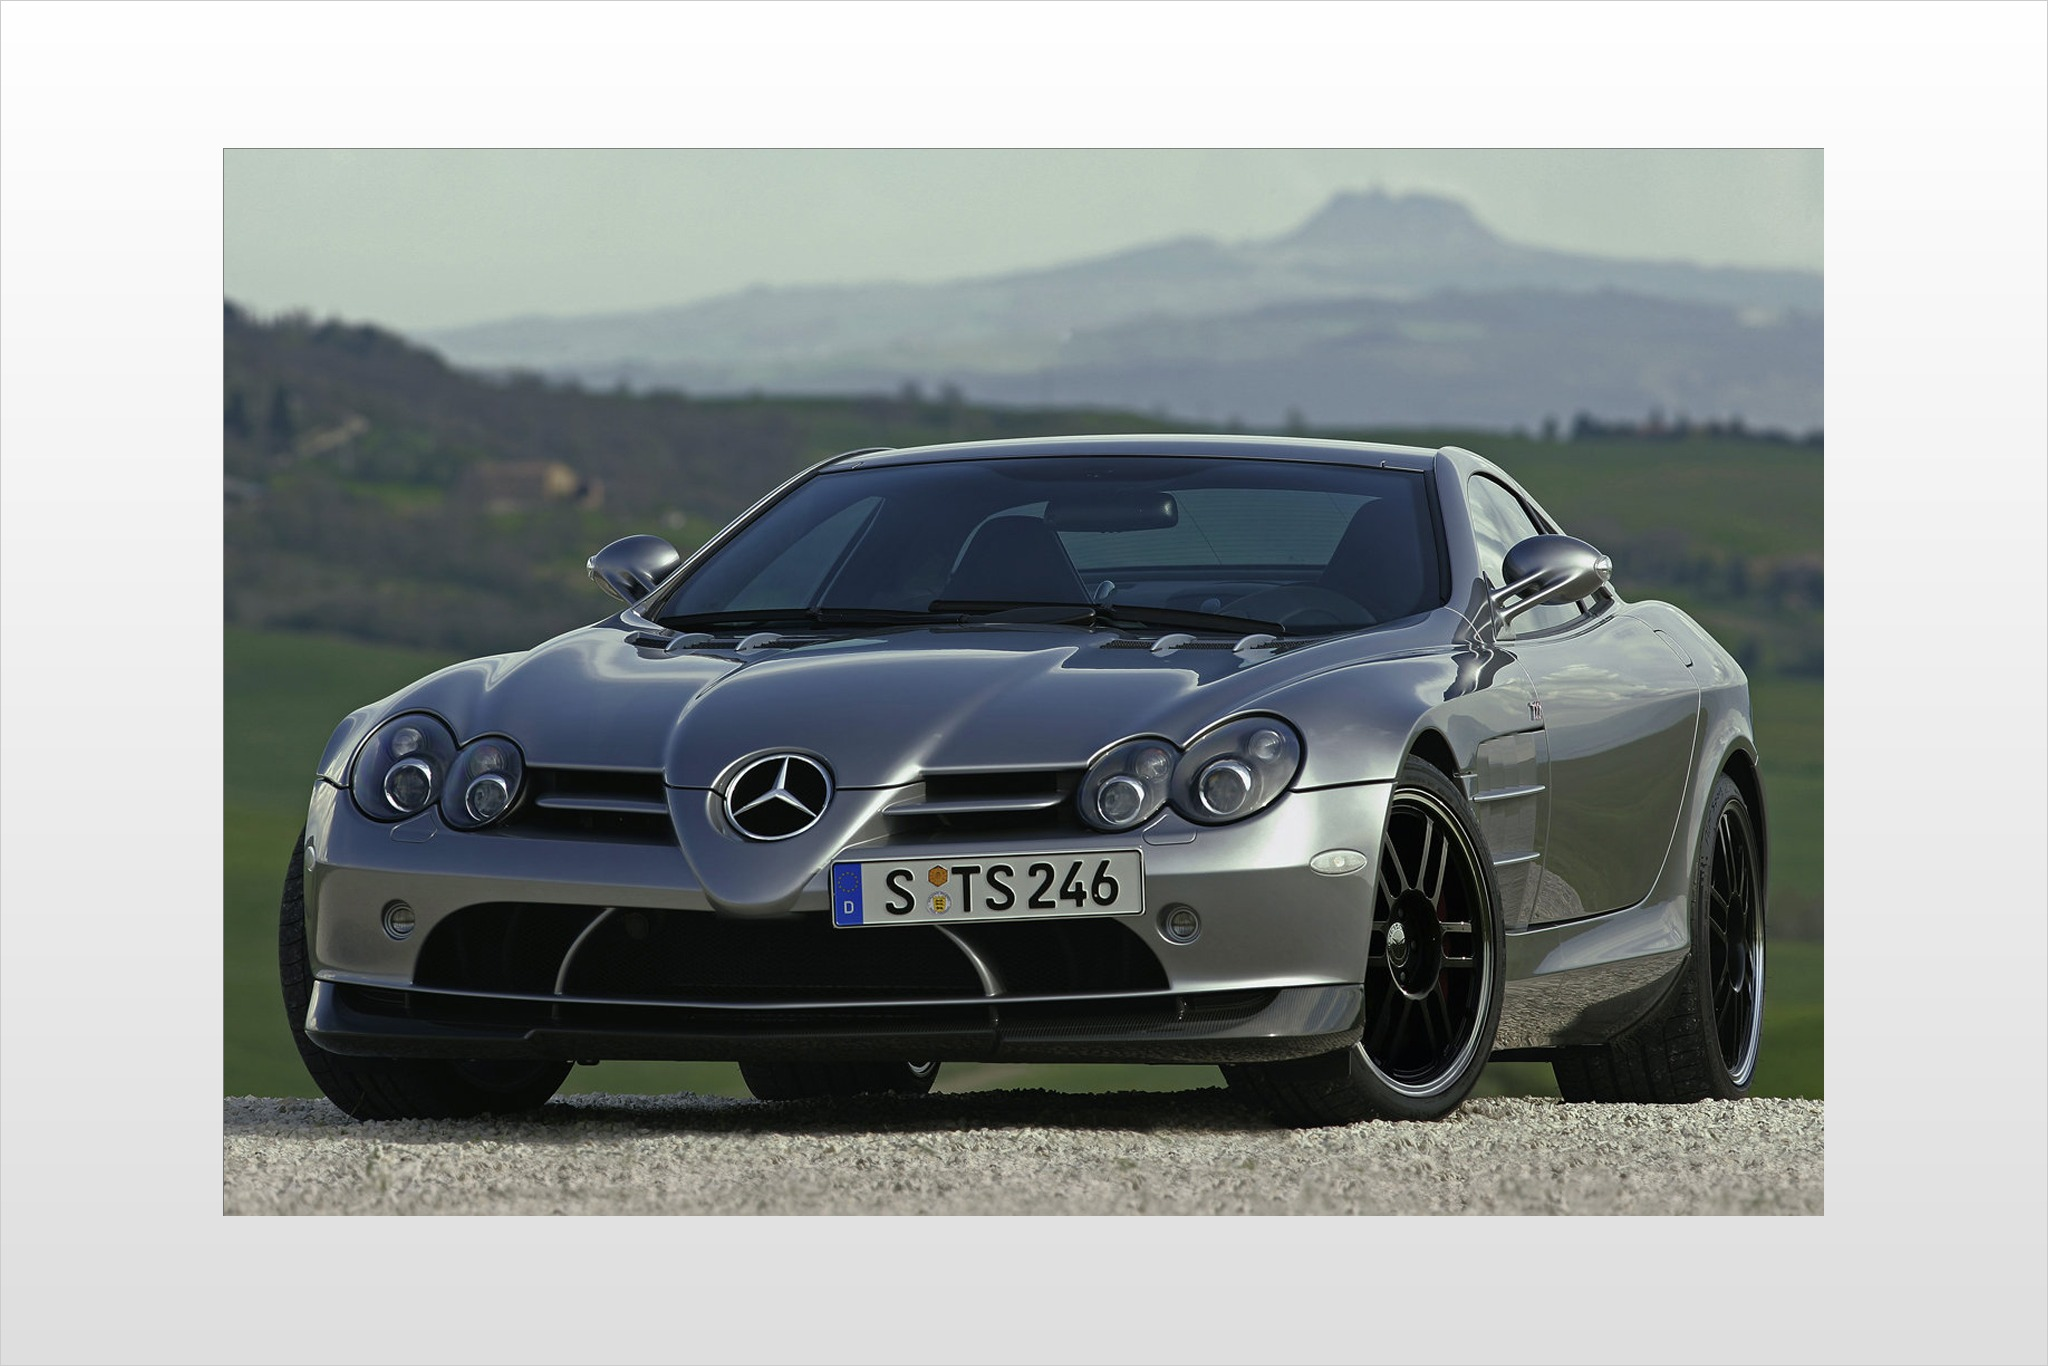 2007 mercedes benz slr mclaren coupe 722 edition fq oem 4 2048